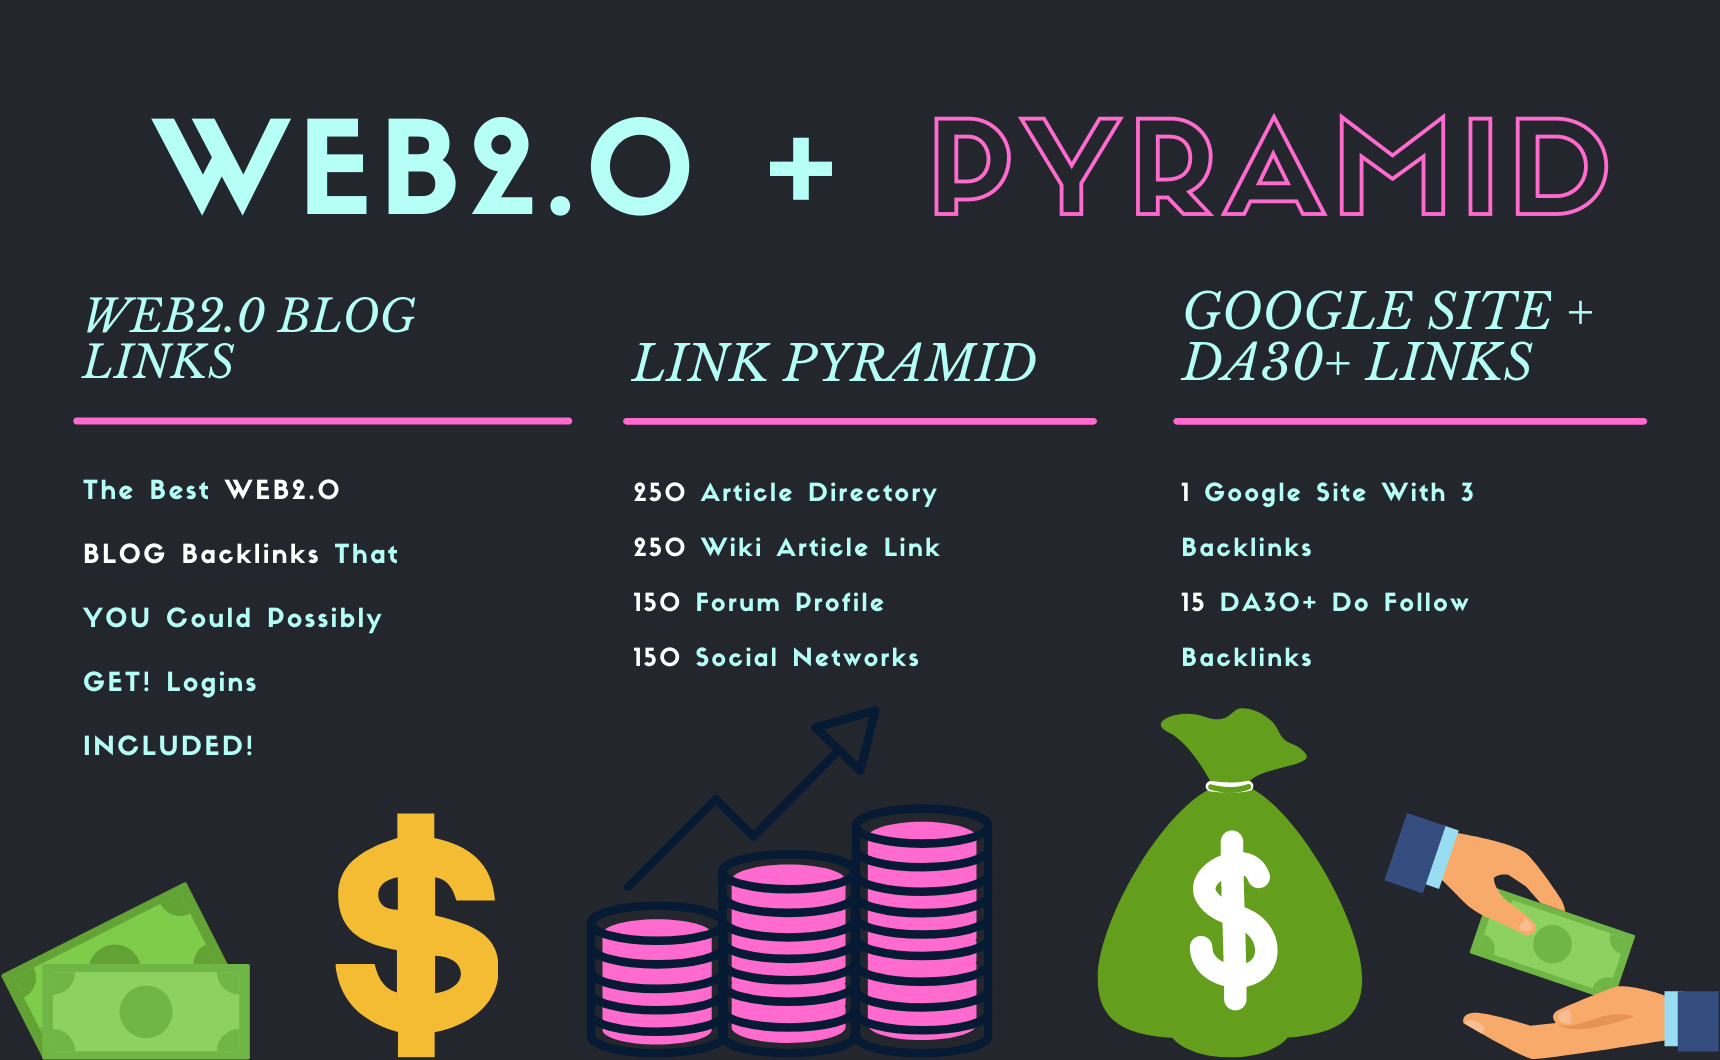 WEB2.0 BLOG Backlinks + Link PYRAMID